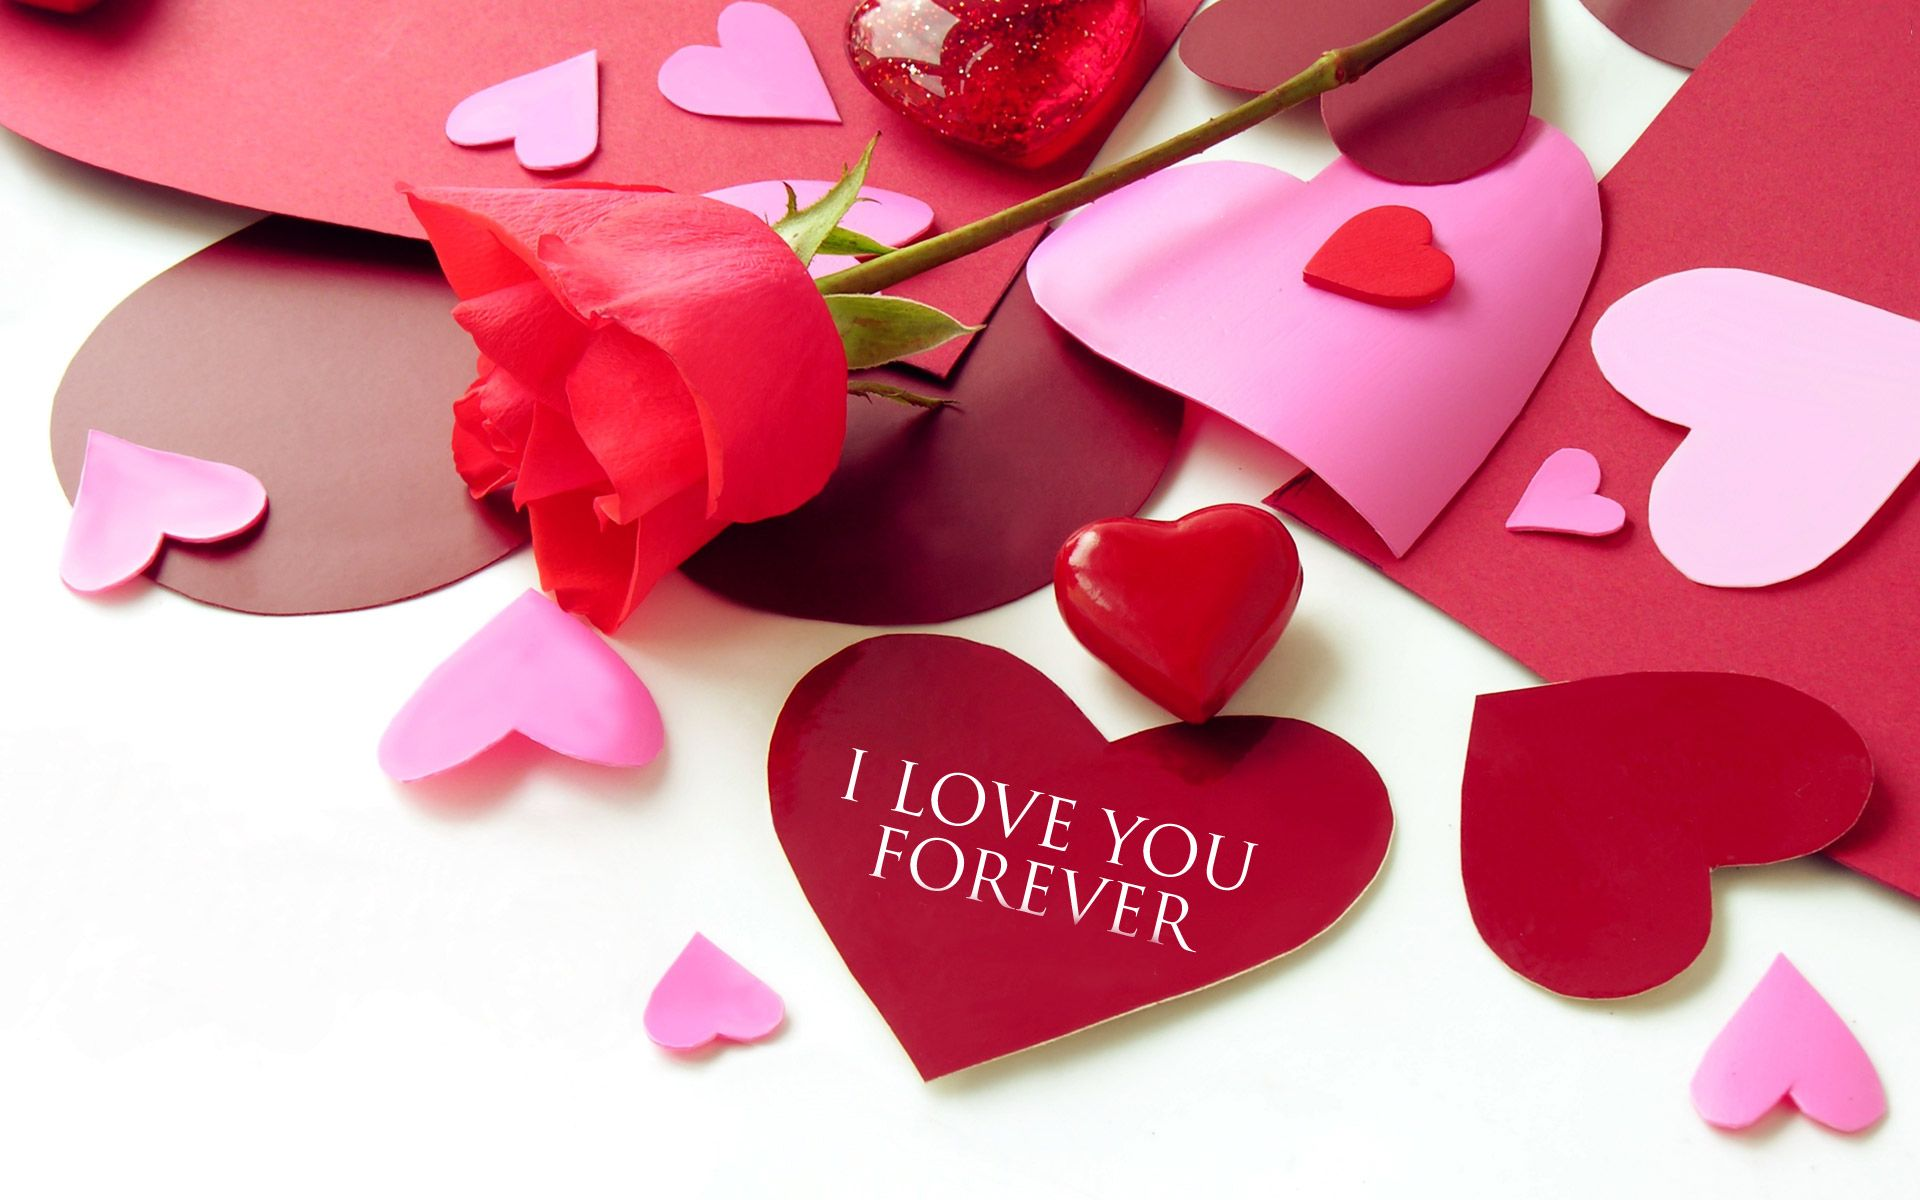 Most Beautiful Love You Forever Images Freeeasypics Pinterest Wallpaper and Hd wallpaper